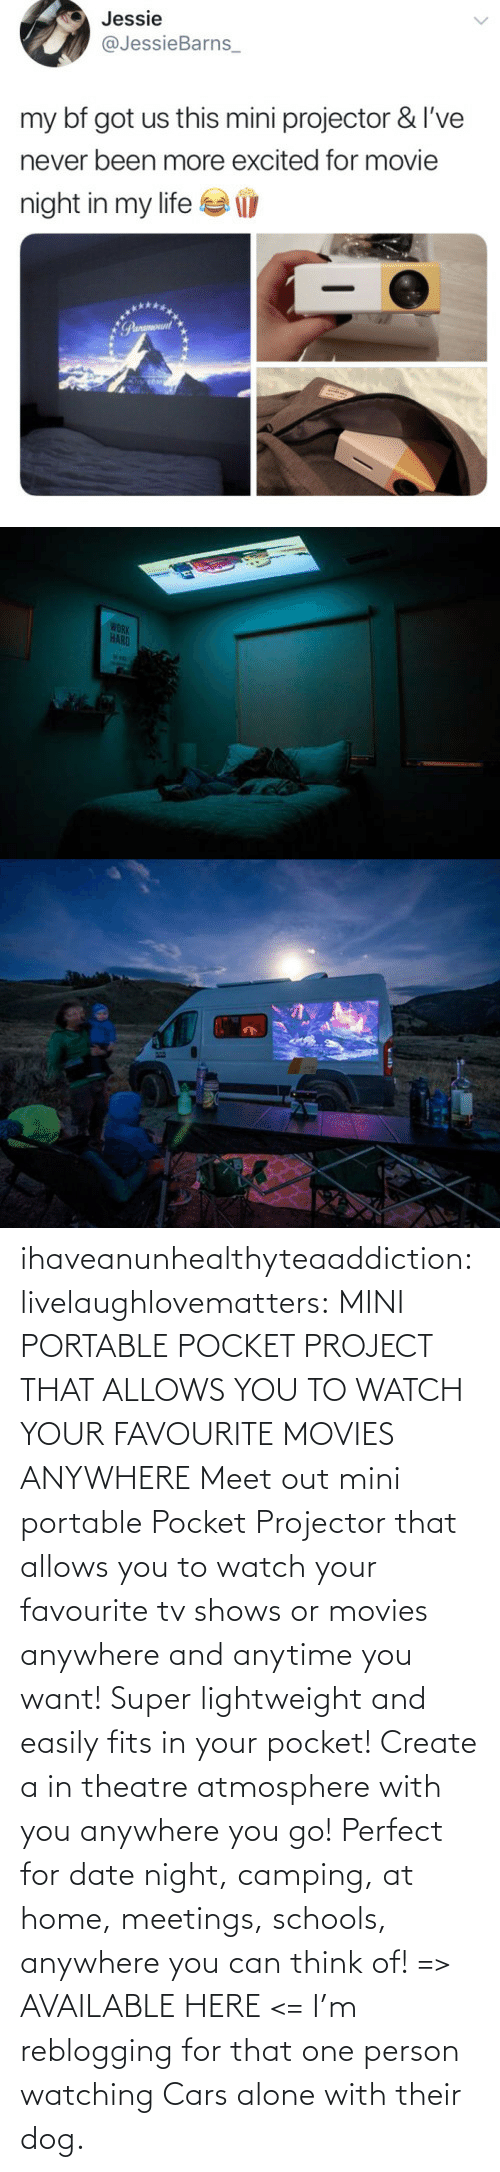 project: ihaveanunhealthyteaaddiction:  livelaughlovematters: MINI PORTABLE POCKET PROJECT THAT ALLOWS YOU TO WATCH YOUR FAVOURITE MOVIES ANYWHERE Meet out mini portable Pocket Projector that allows you to watch your favourite tv shows or movies anywhere and anytime you want! Super lightweight and easily fits in your pocket! Create a in theatre atmosphere with you anywhere you go! Perfect for date night, camping, at home, meetings, schools, anywhere you can think of! => AVAILABLE HERE <=    I'm reblogging for that one person watching Cars alone with their dog.